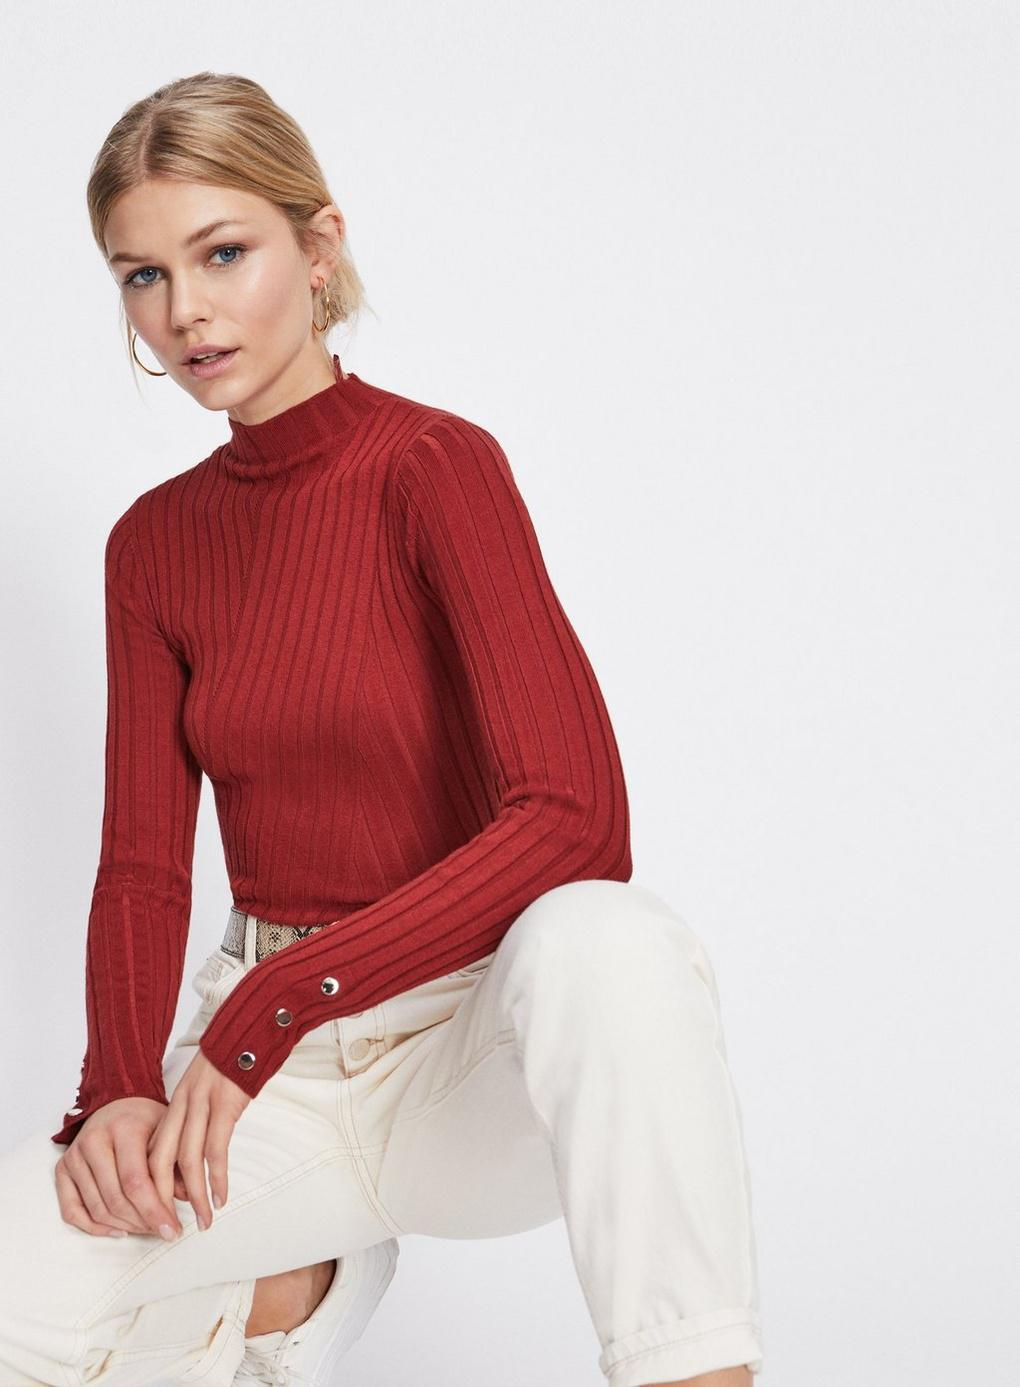 Lyst In Neck Red Rust Selfridge Funnel Miss Knitted Top Popper UxUqgCwA